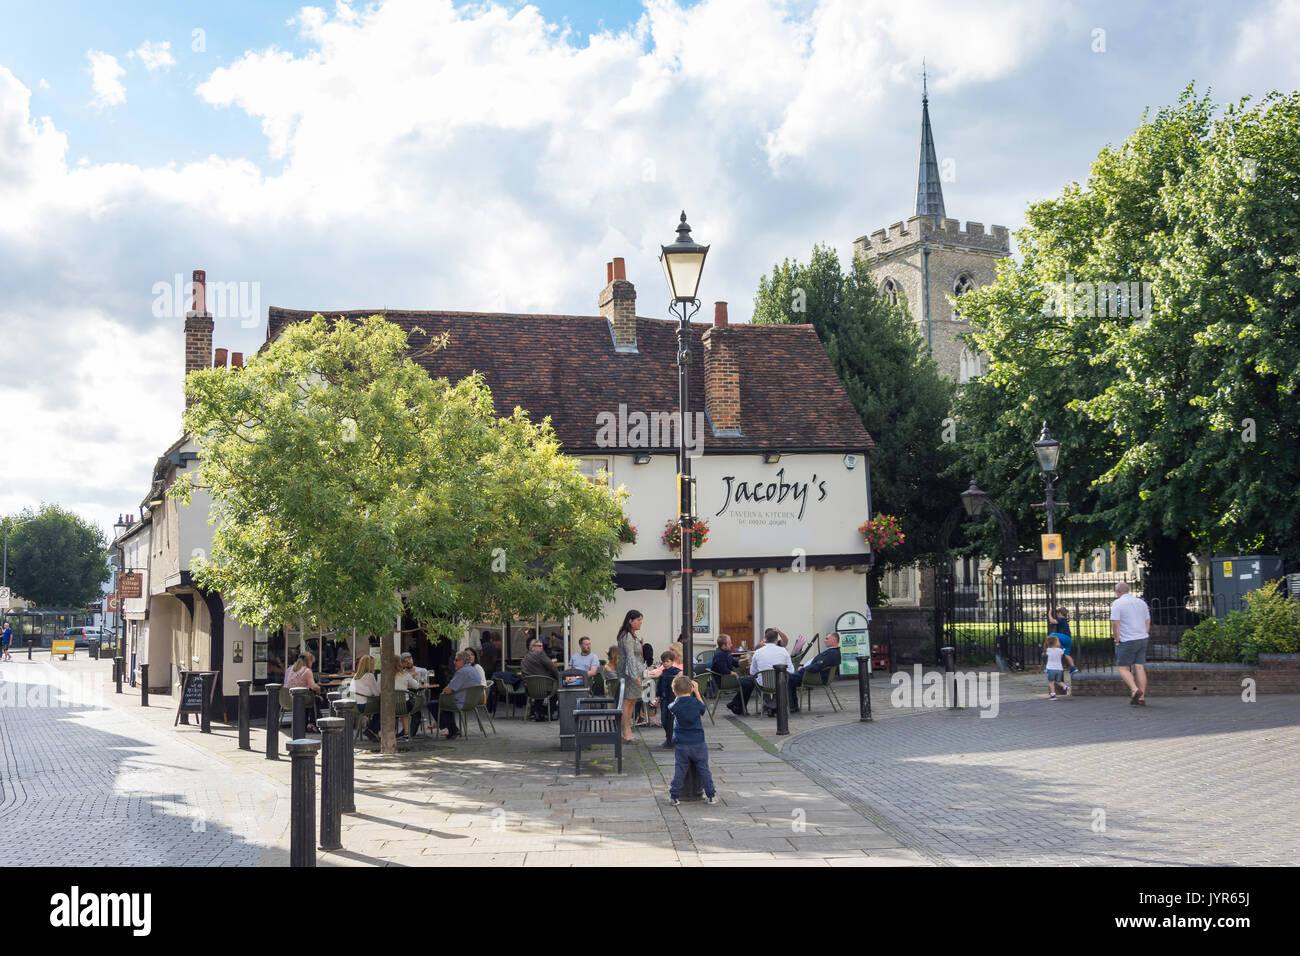 Jacoby's Restaurant and St.Mary's Church, Tudor Square, Ware, Hertfordshire, England, United Kingdom - Stock Image